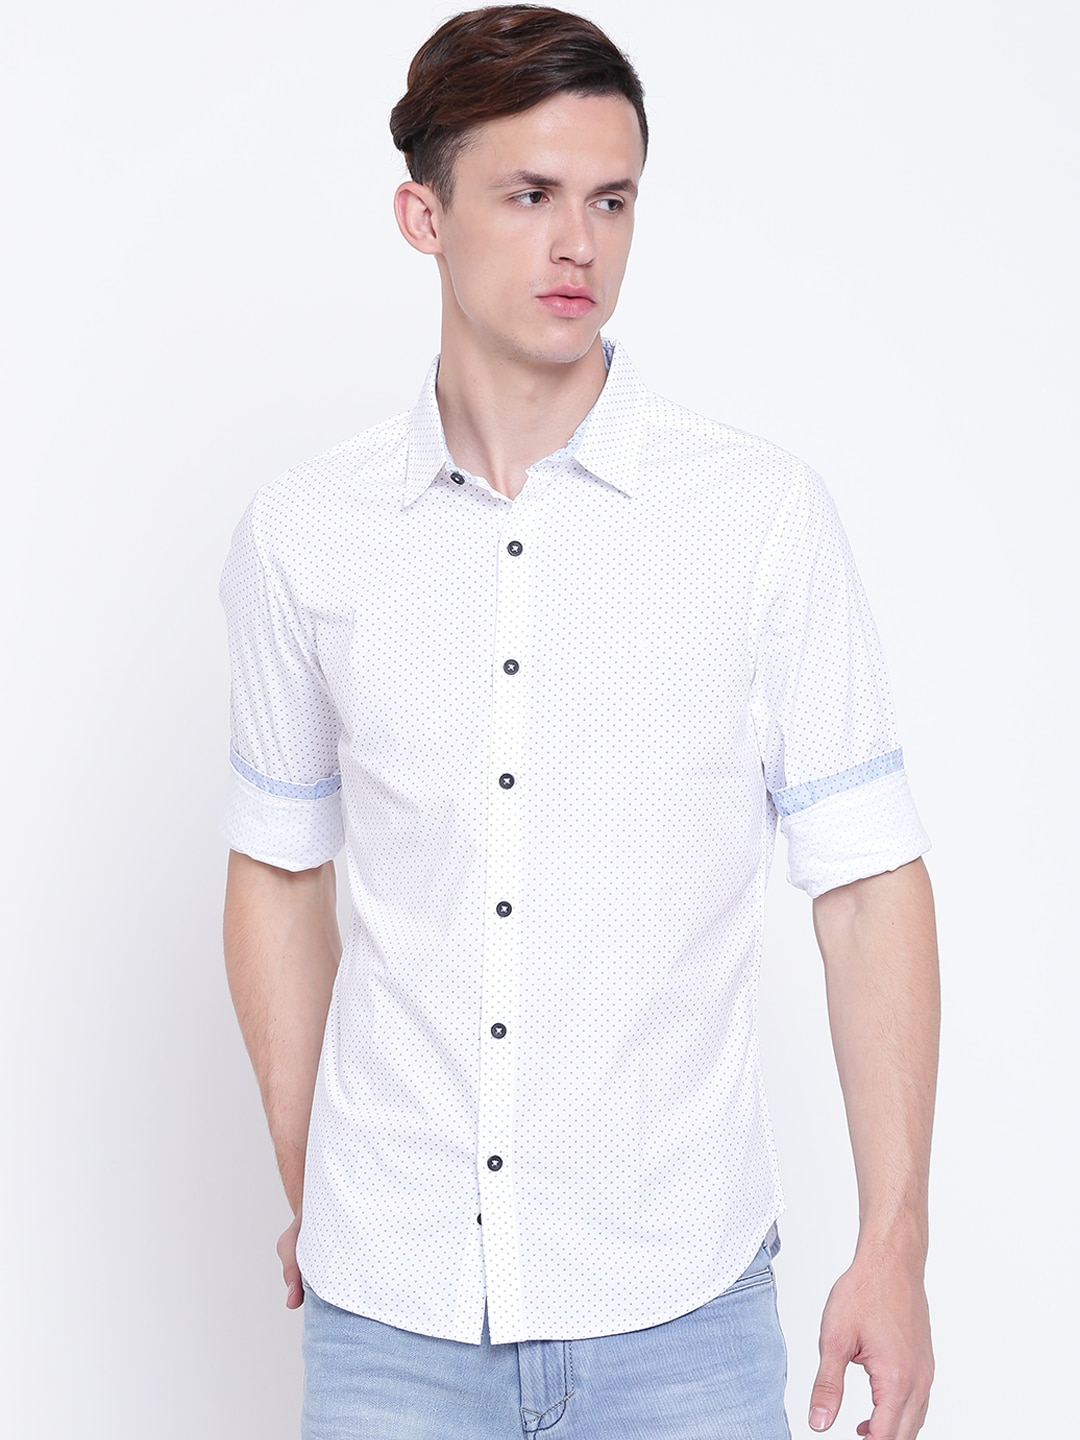 United Colors of Benetton Men White Slim Fit Printed Casual Shirt image